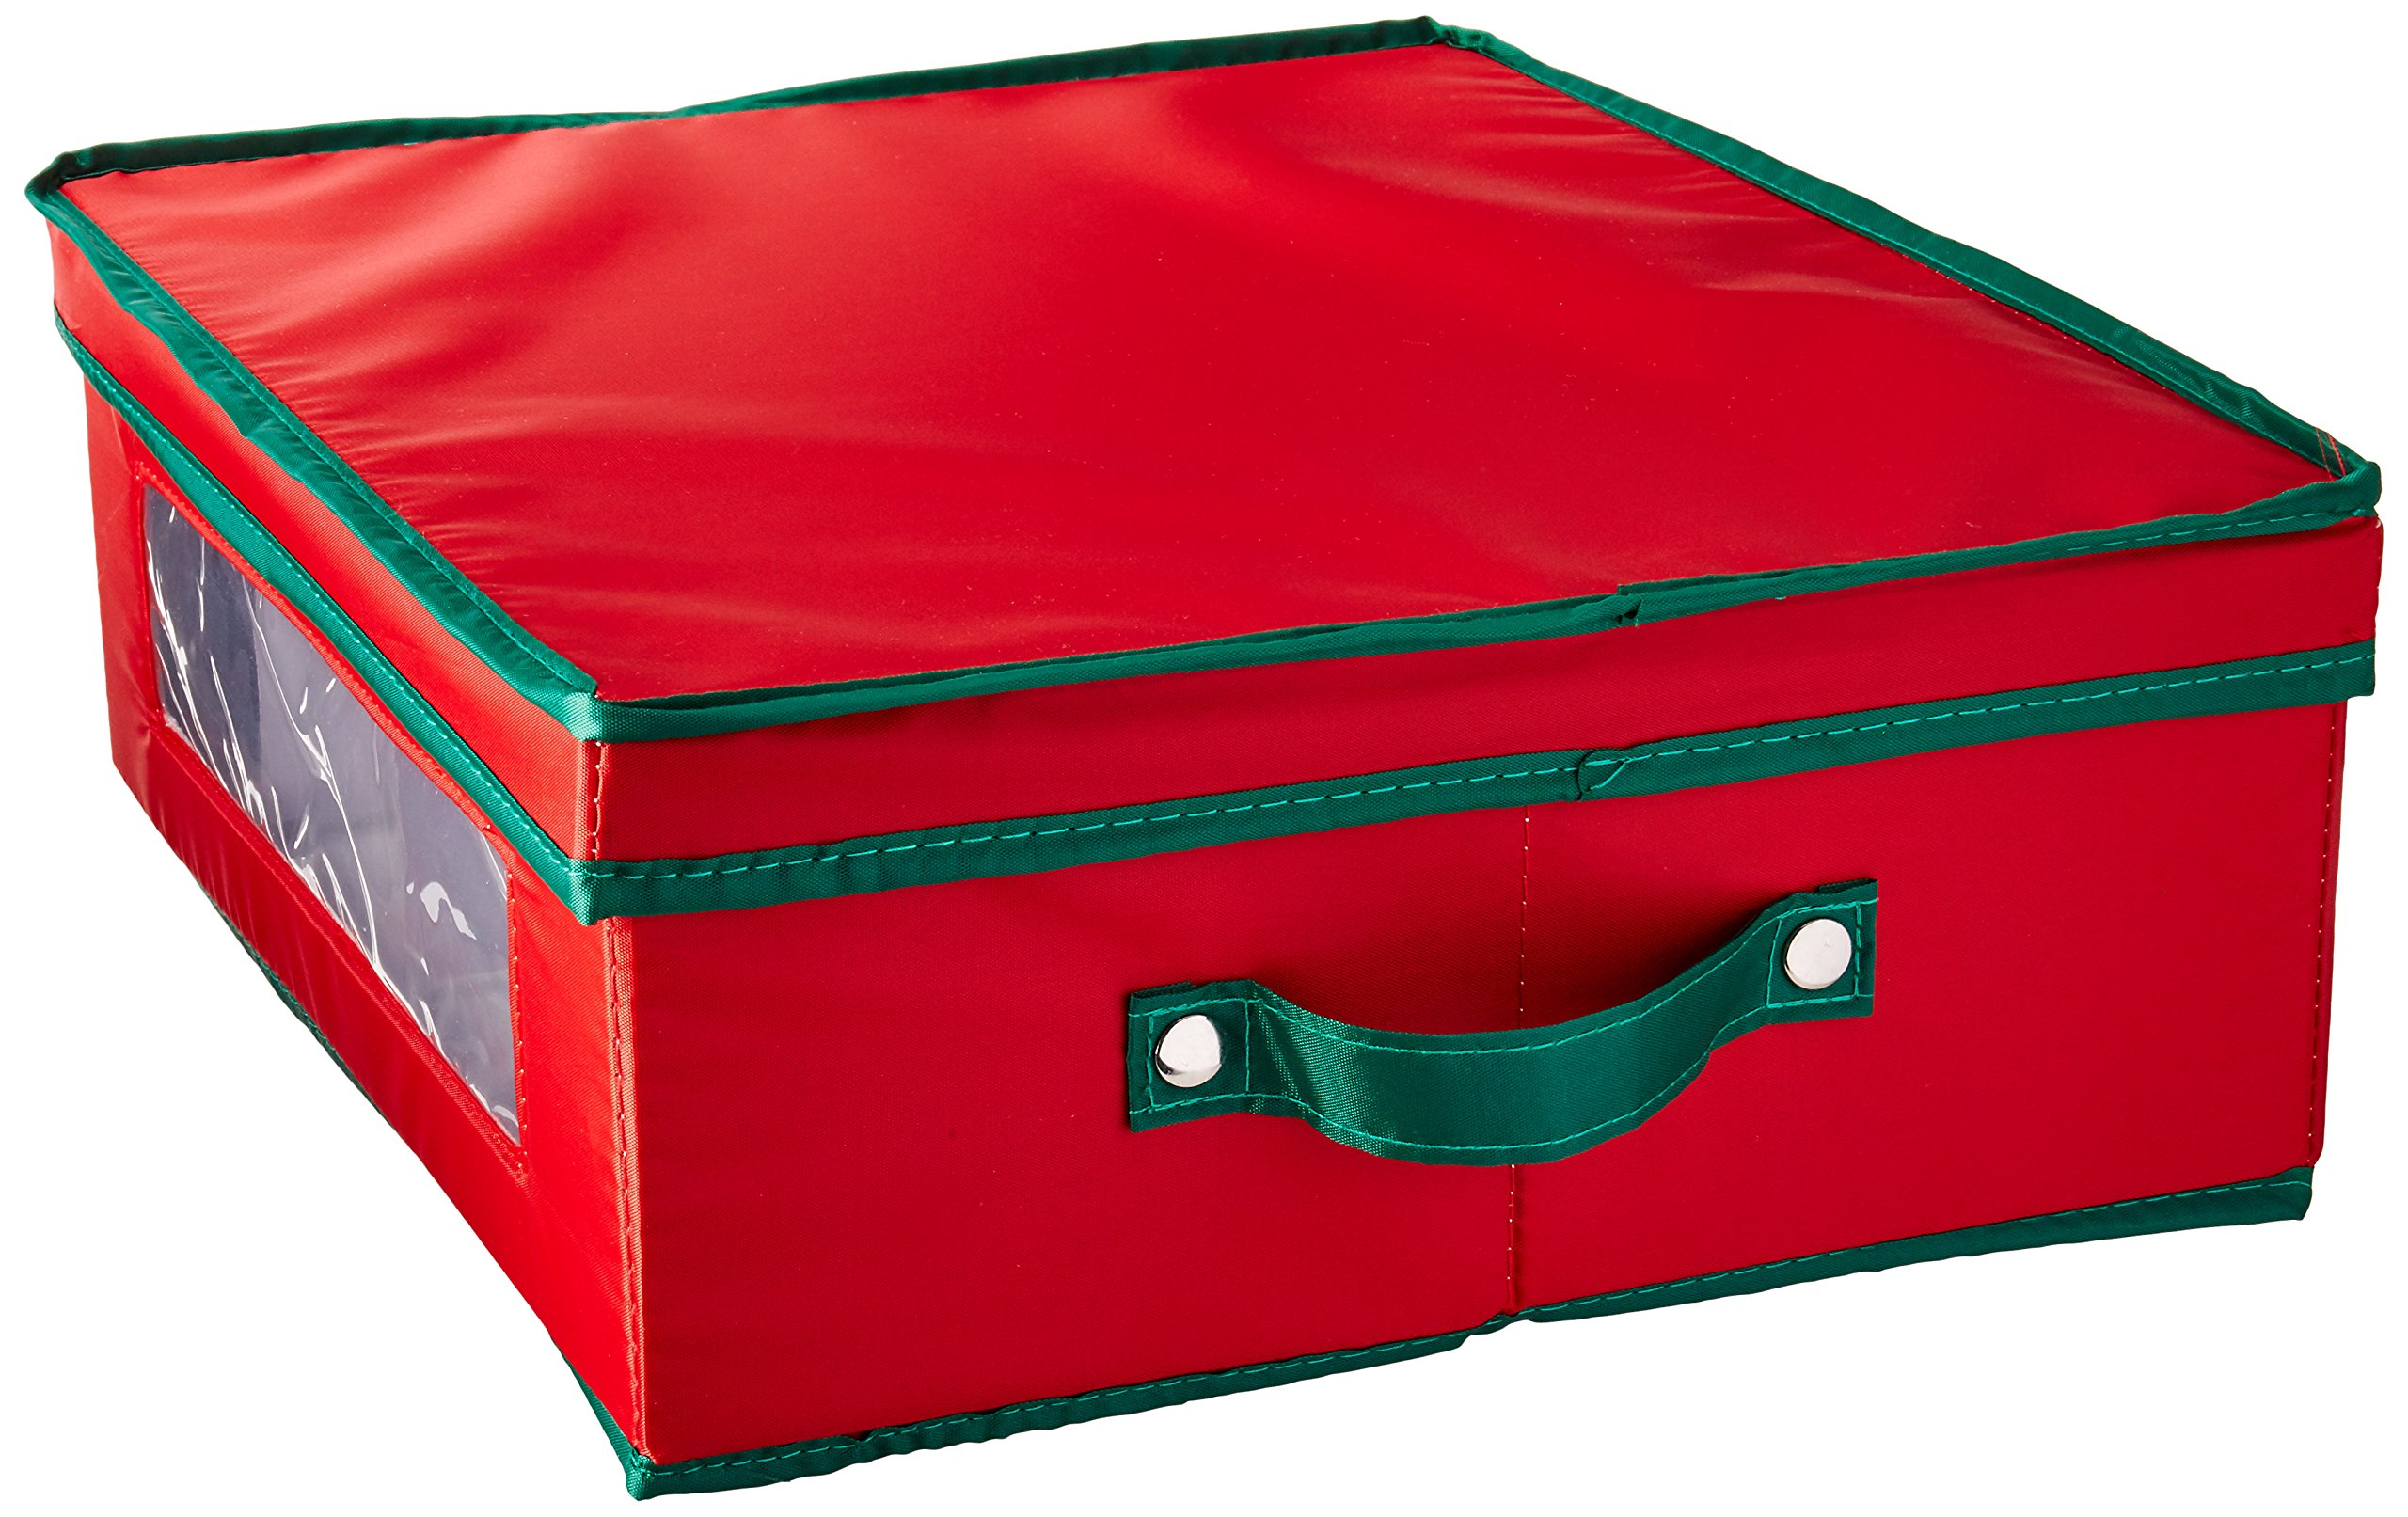 Household Essentials 538RED Holiday China Dinnerware Storage Chest Coffee Mugs | Removable Lid | Red Canvas Green Trim